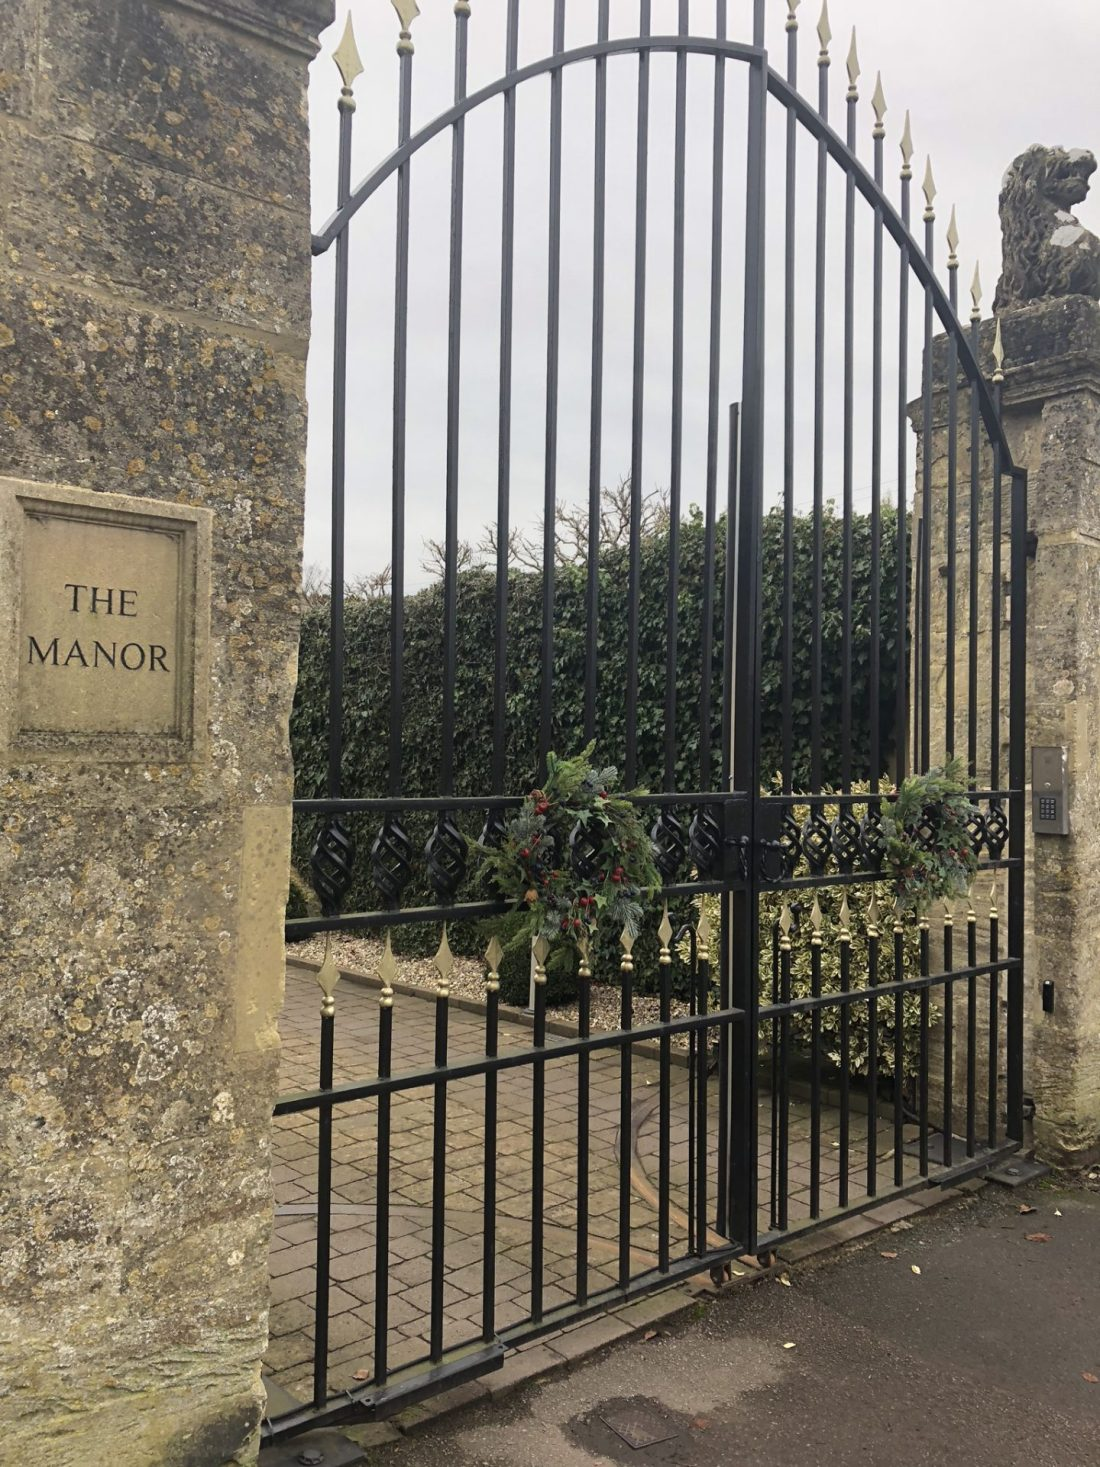 Home for the holidays: The Manor, Bourton on the Water